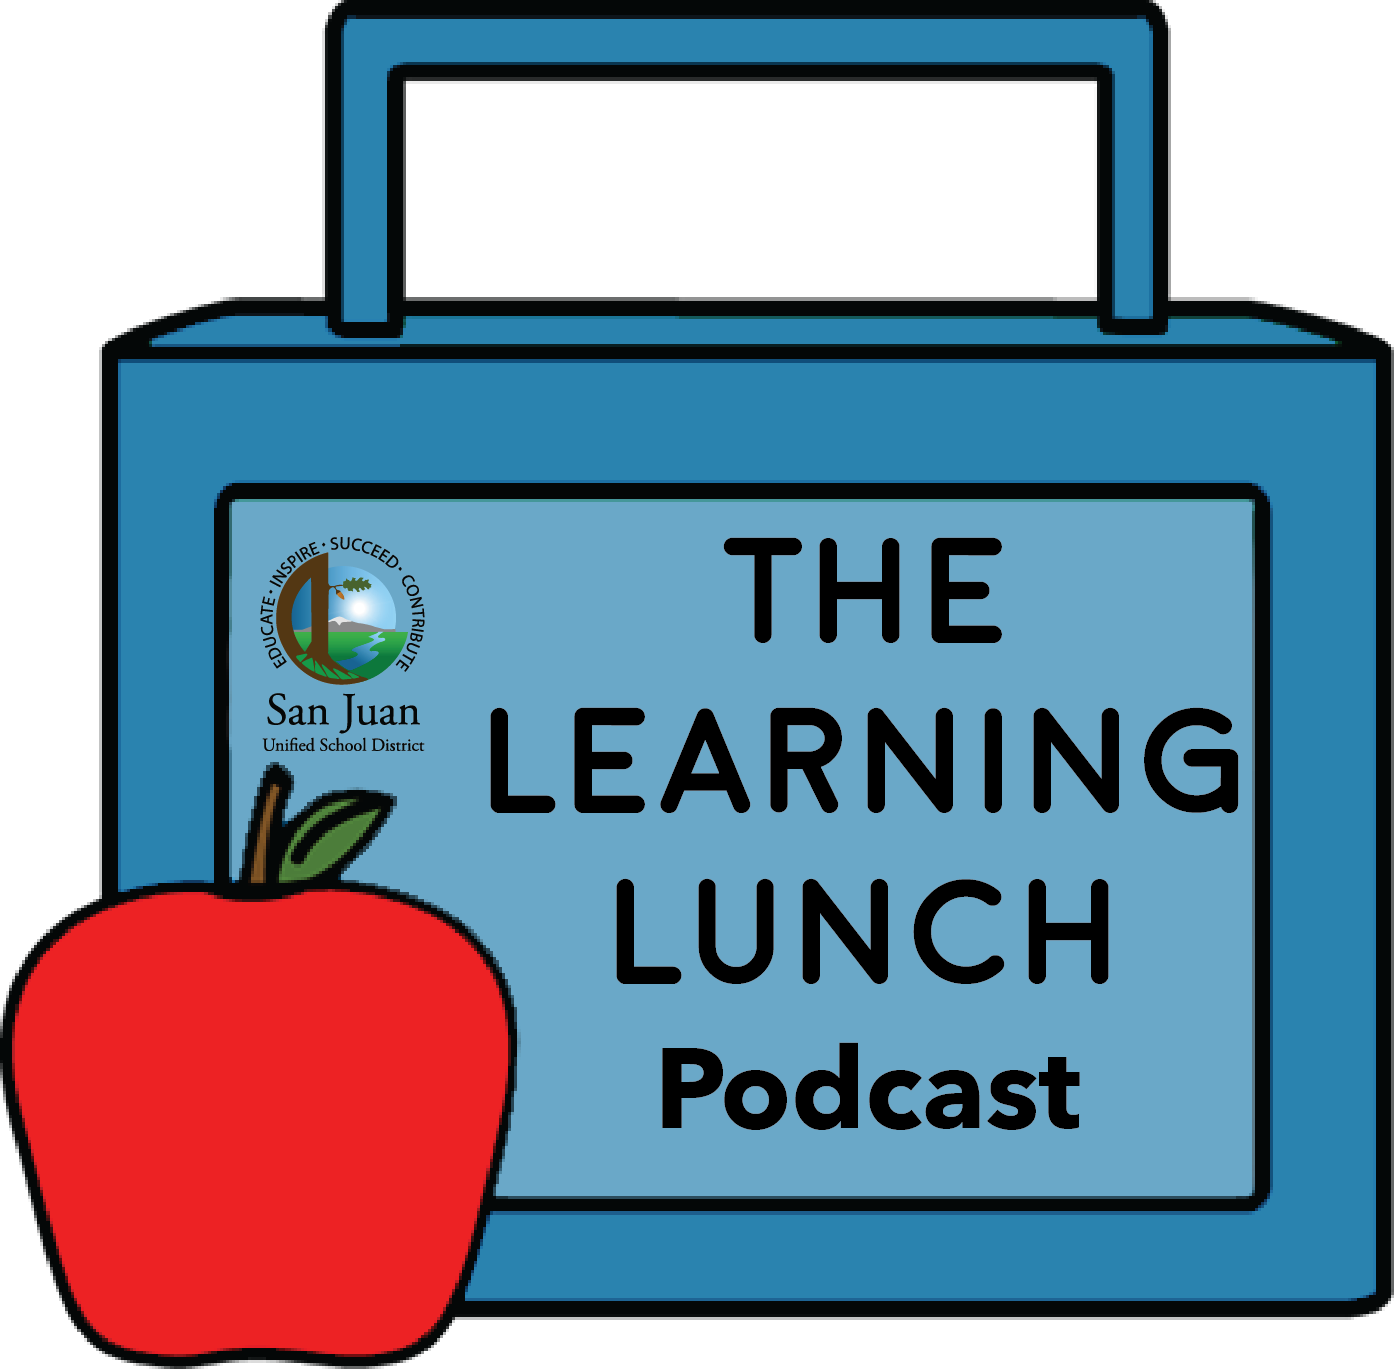 Reading to children - Learning lunch podcast